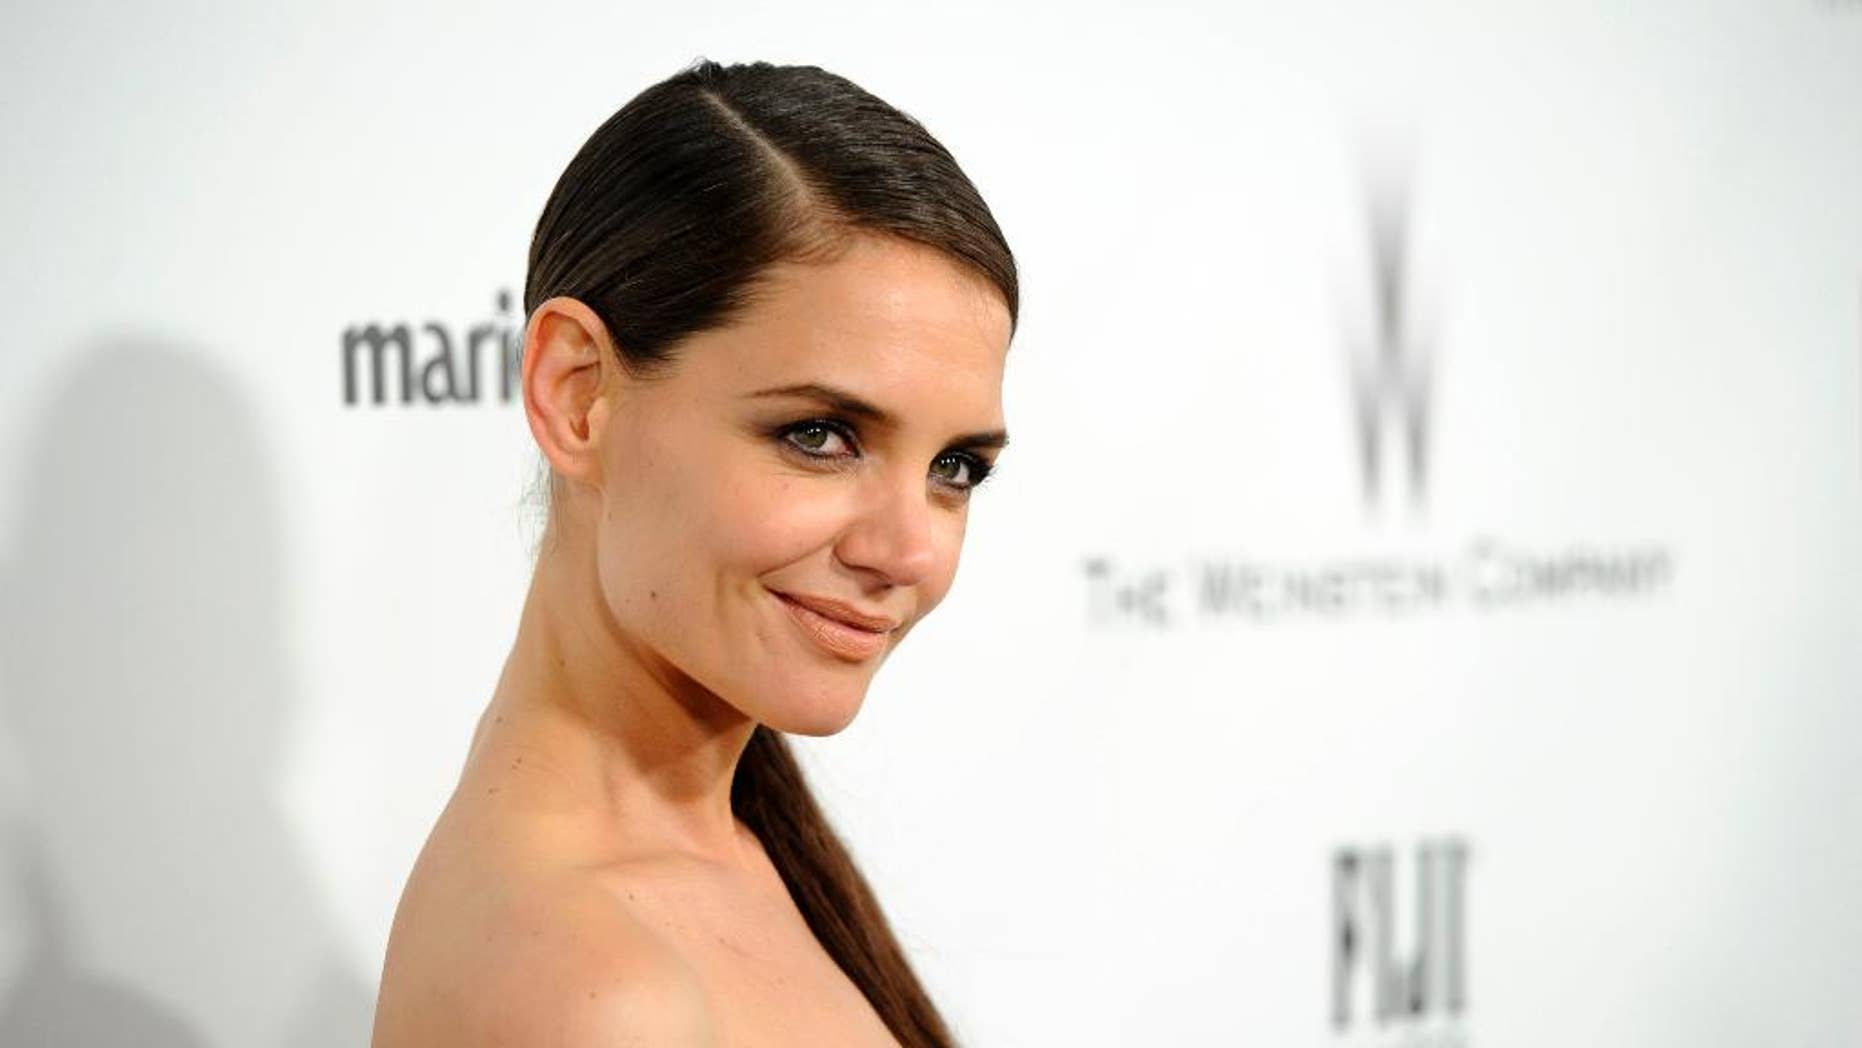 """FILE - In this Jan. 11, 2015 file photo, Katie Holmes arrives at The Weinstein Company and Netflix Golden Globes afterparty at the Beverly Hilton Hotel in Beverly Hills, Calif. Holmes is joining the Showtime drama """"Ray Donovan"""" for its upcoming third season. The former """"Dawson's Creek"""" star will play the businesswoman Paige, a daughter of billionaire producer Andrew Finney, who is portrayed by Ian McShane. Finney enlists the services of the show's title character, a Hollywood fixer played by Liev Schreiber. (Photo by Chris Pizzello/Invision/AP, File)"""